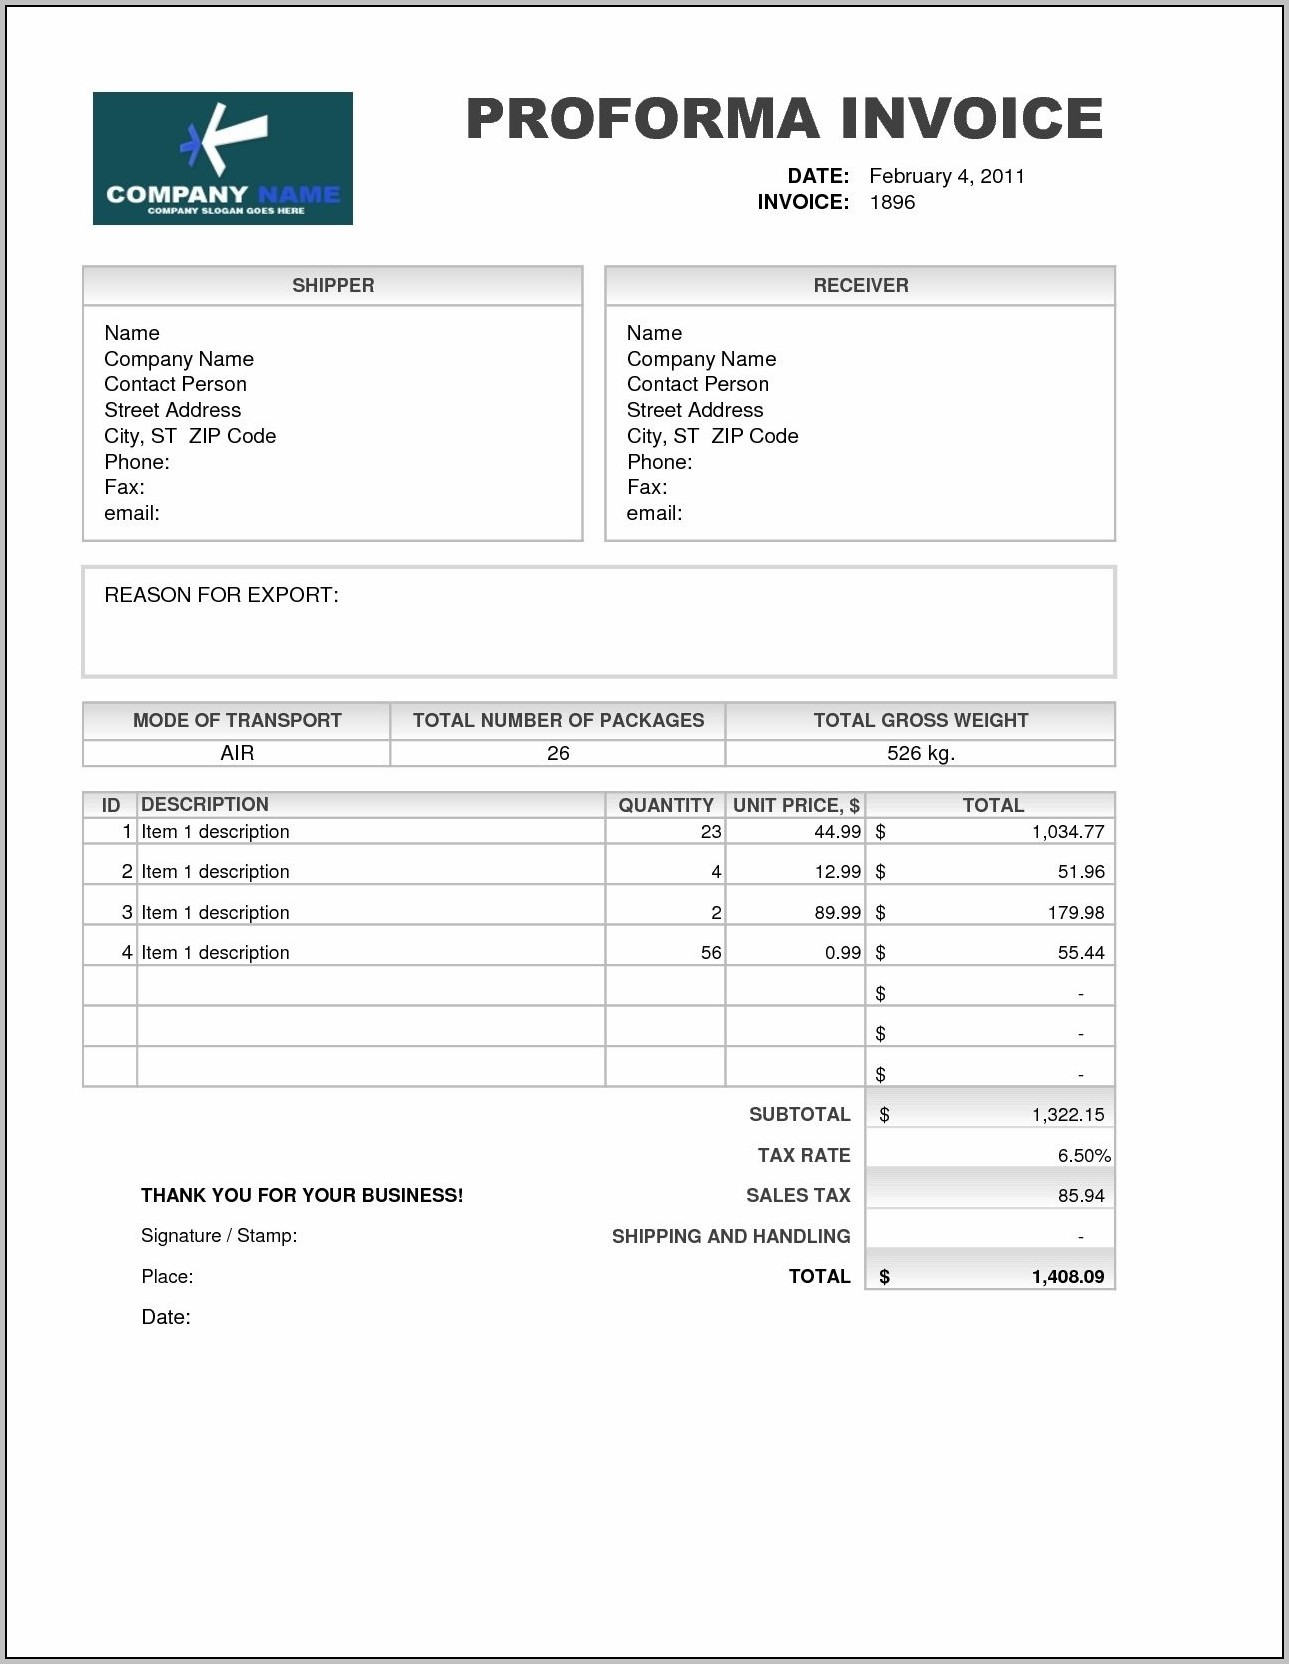 Proforma Invoice Format In Excel For Export